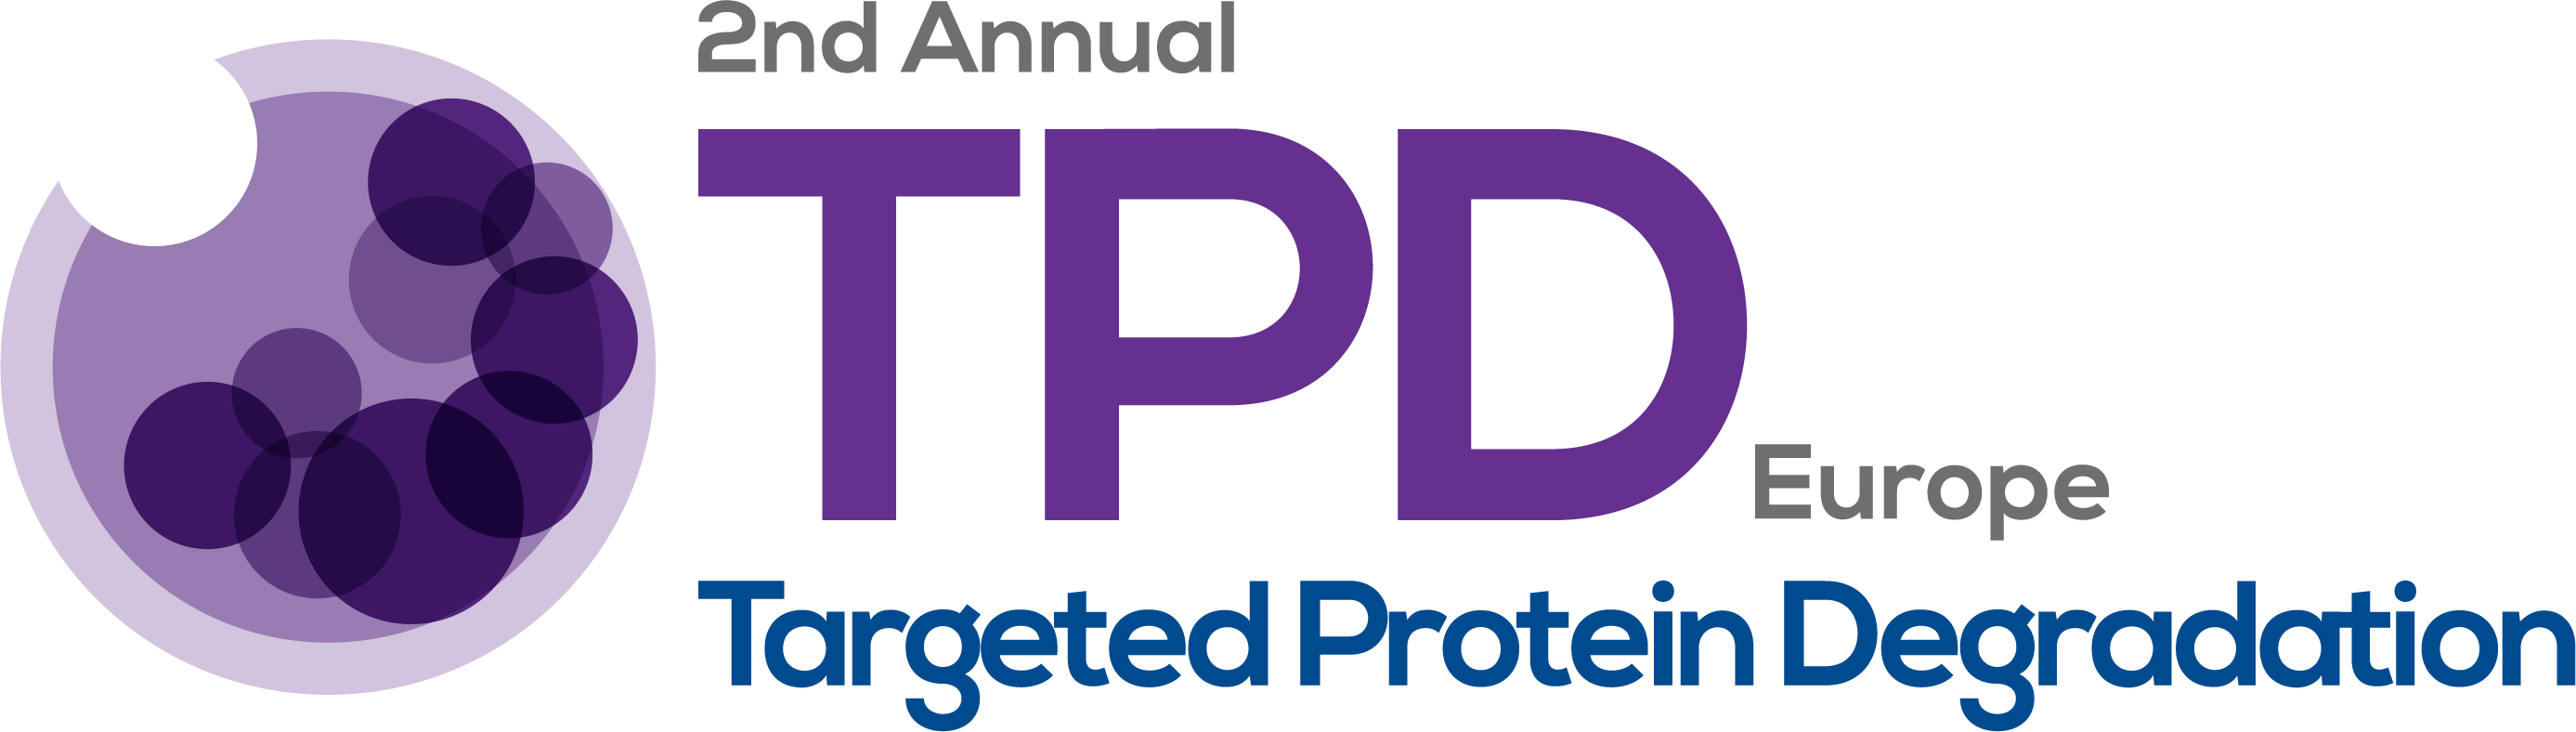 4793_TPD-Targeted_Protein_Degradation_Europe_Logo_2021